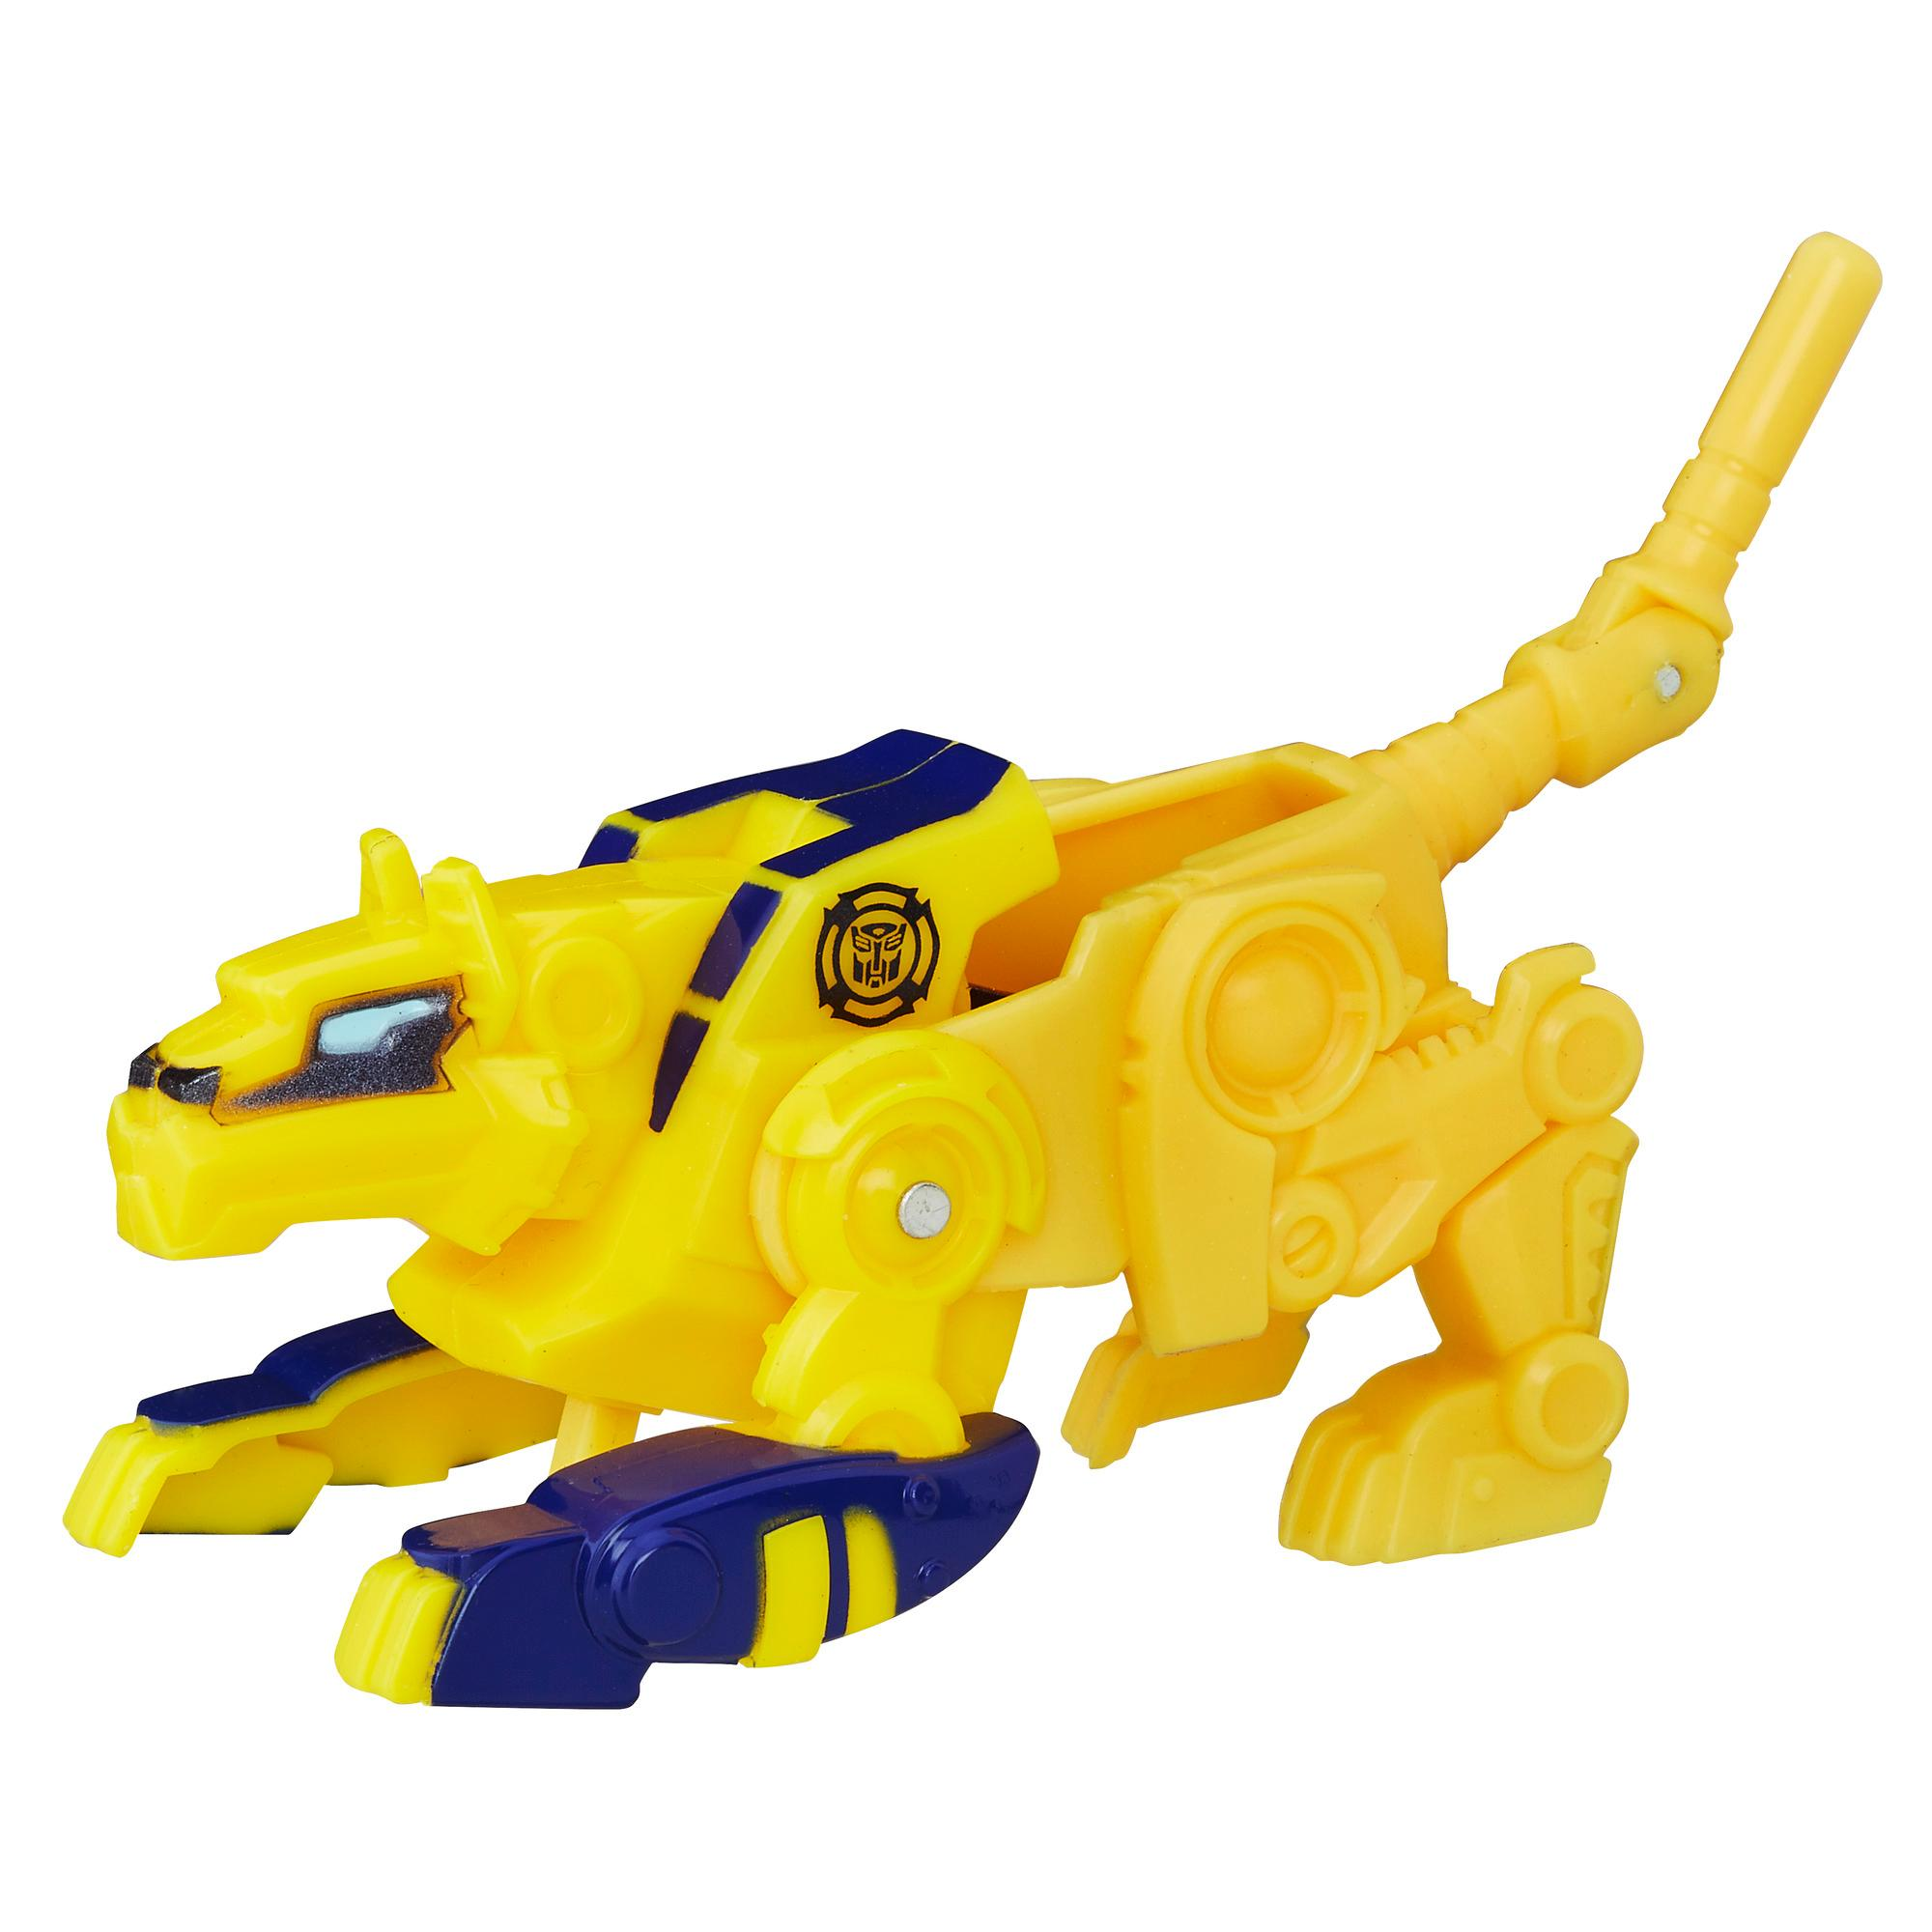 Playskool Heroes Transformers Rescue Bots Swift the Cheetah-Bot